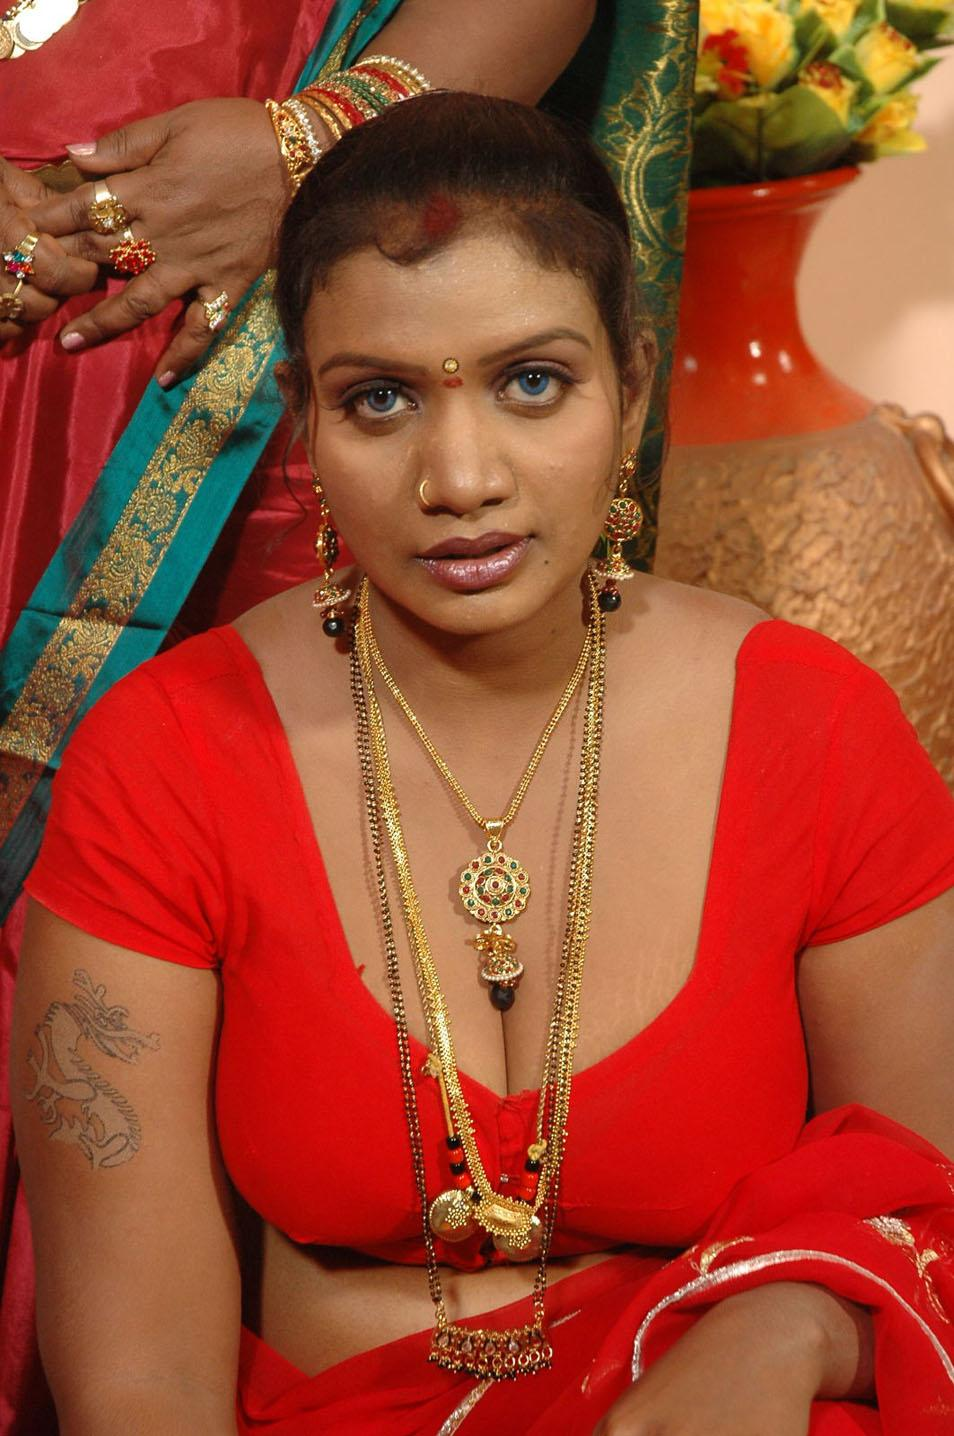 Mysore Mallika Hot http://ajilbab.com/mysore/mysore-mallika-hot-submited-images-pic-fly.htm